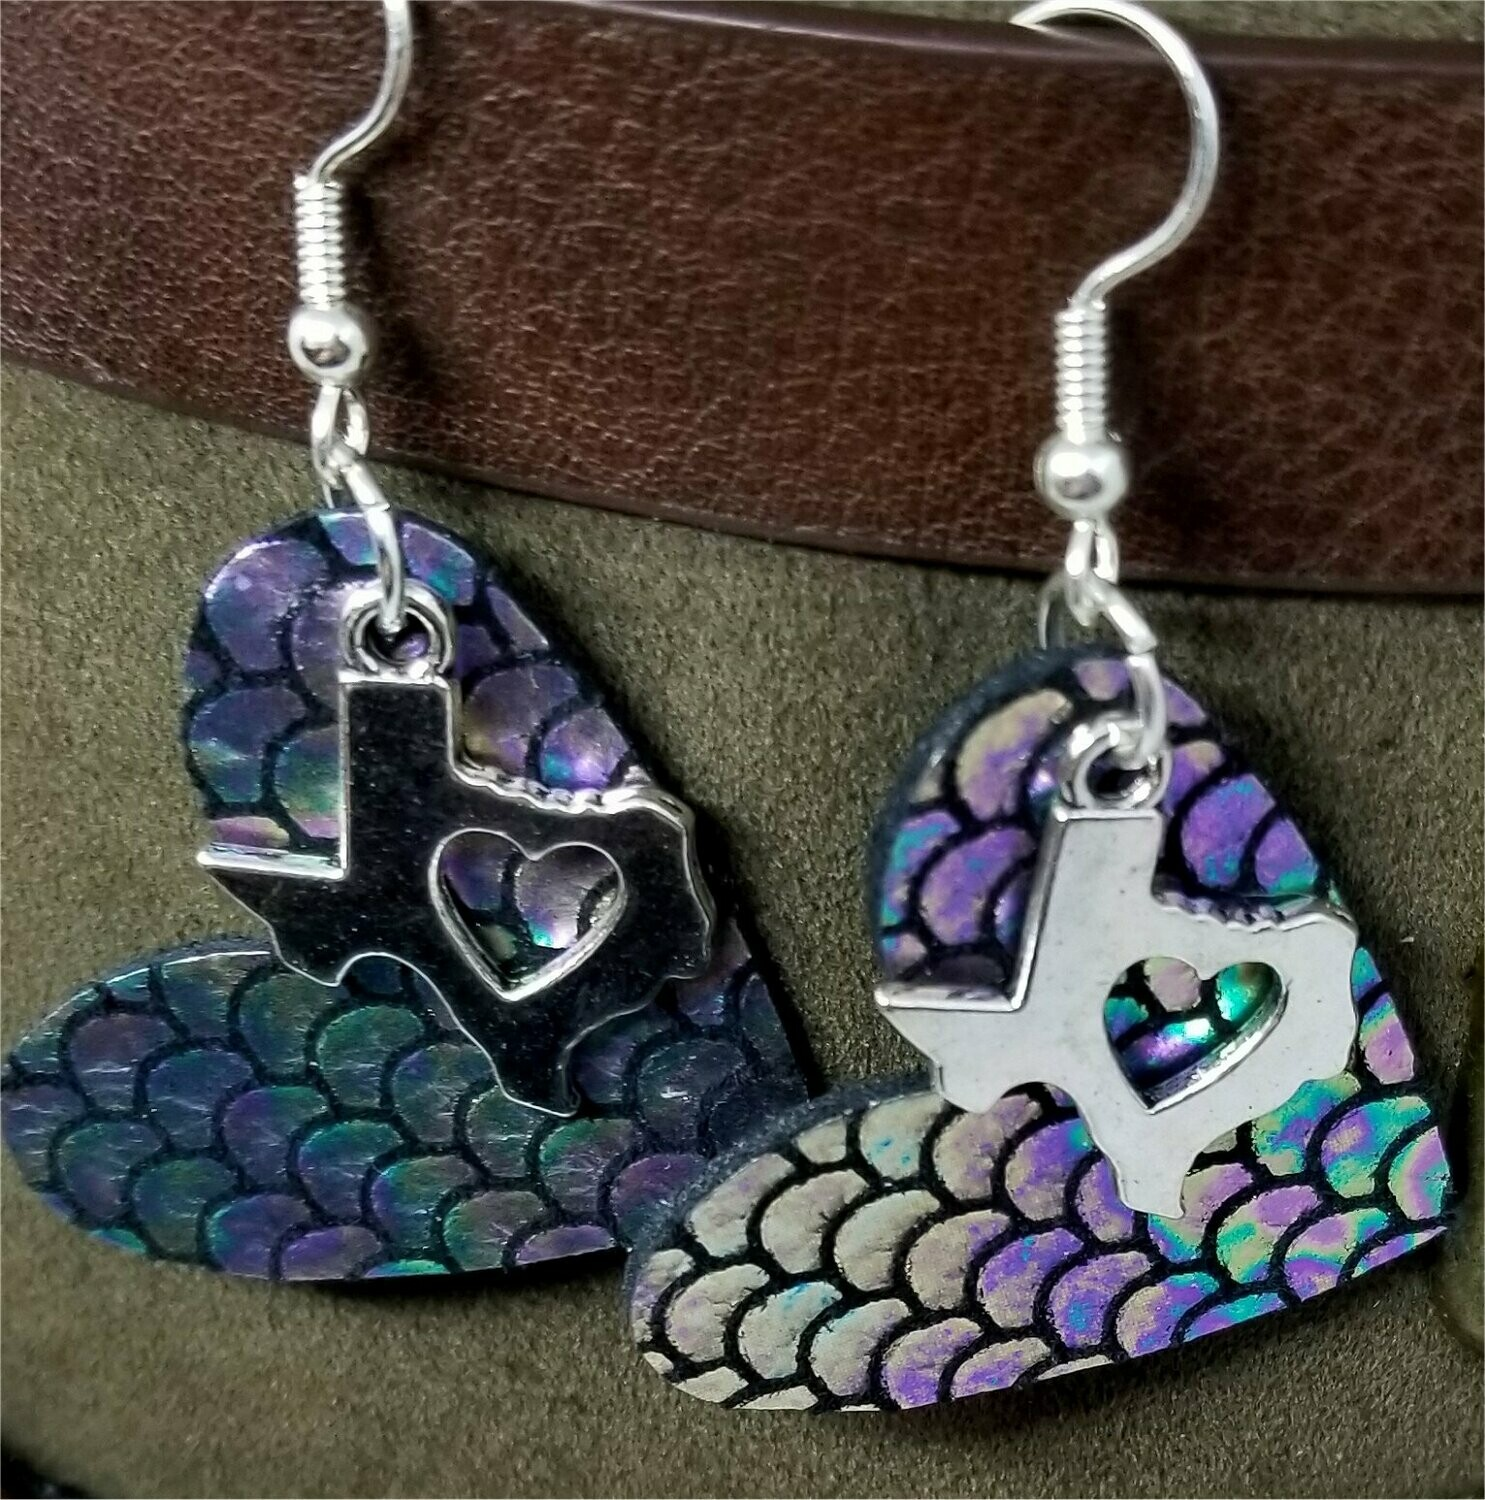 Mermaid Scales Leather Heart Earrings with Silver Texas Charms with Heart Cutouts